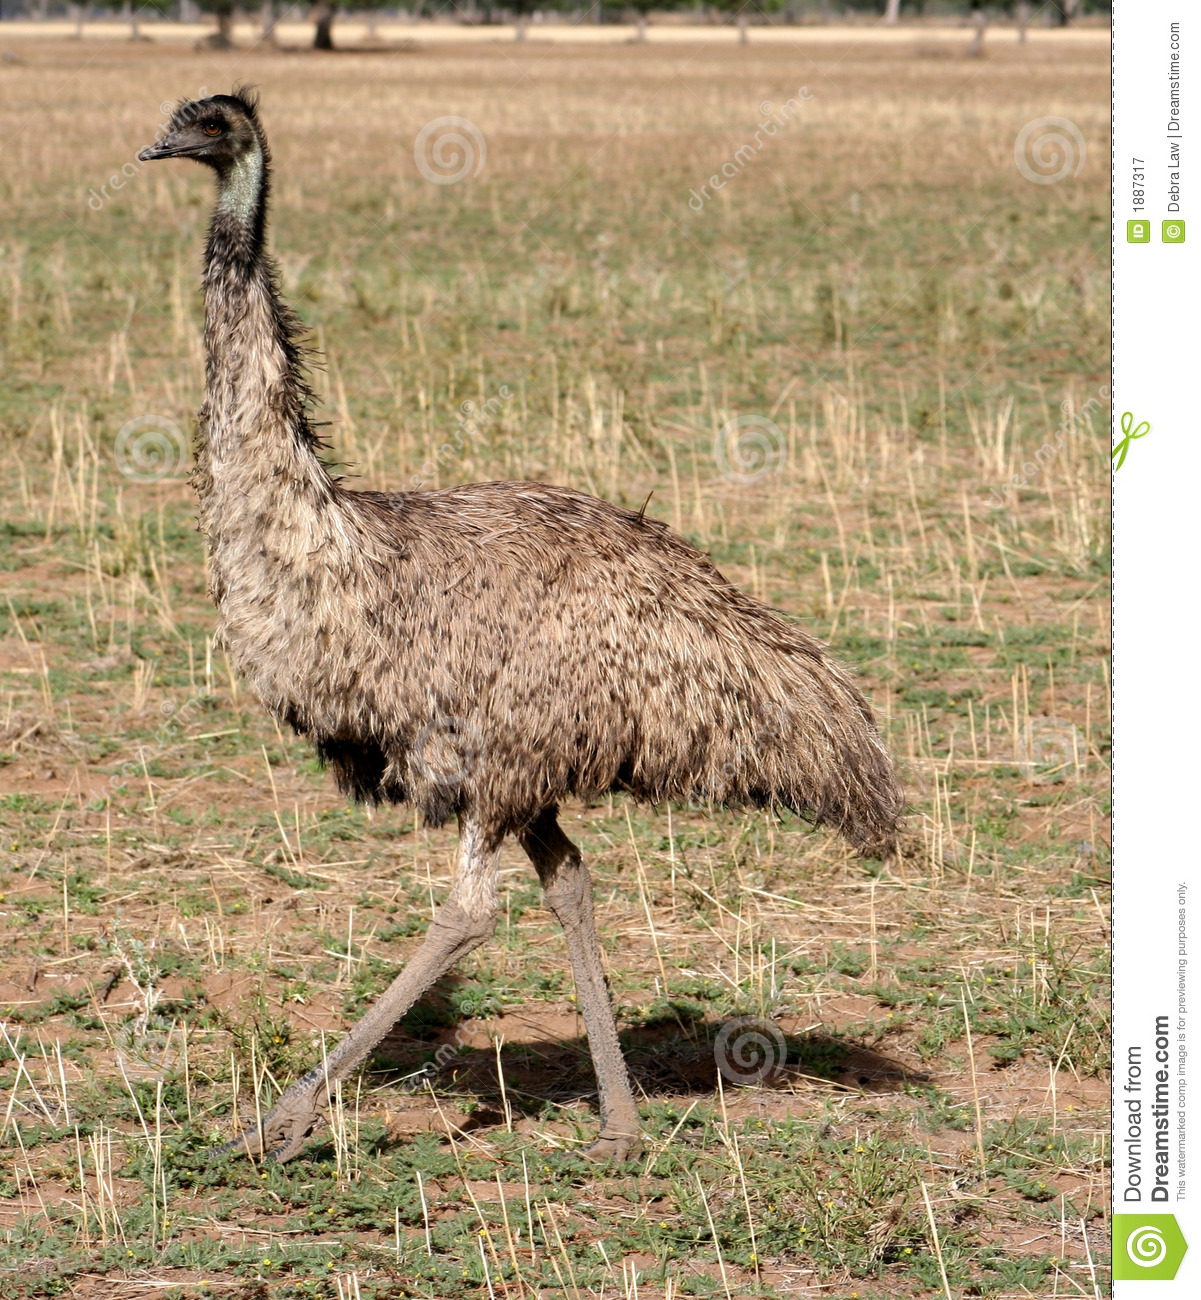 Australia Emu Solo View Royalty Free Stock Photography - Image ...